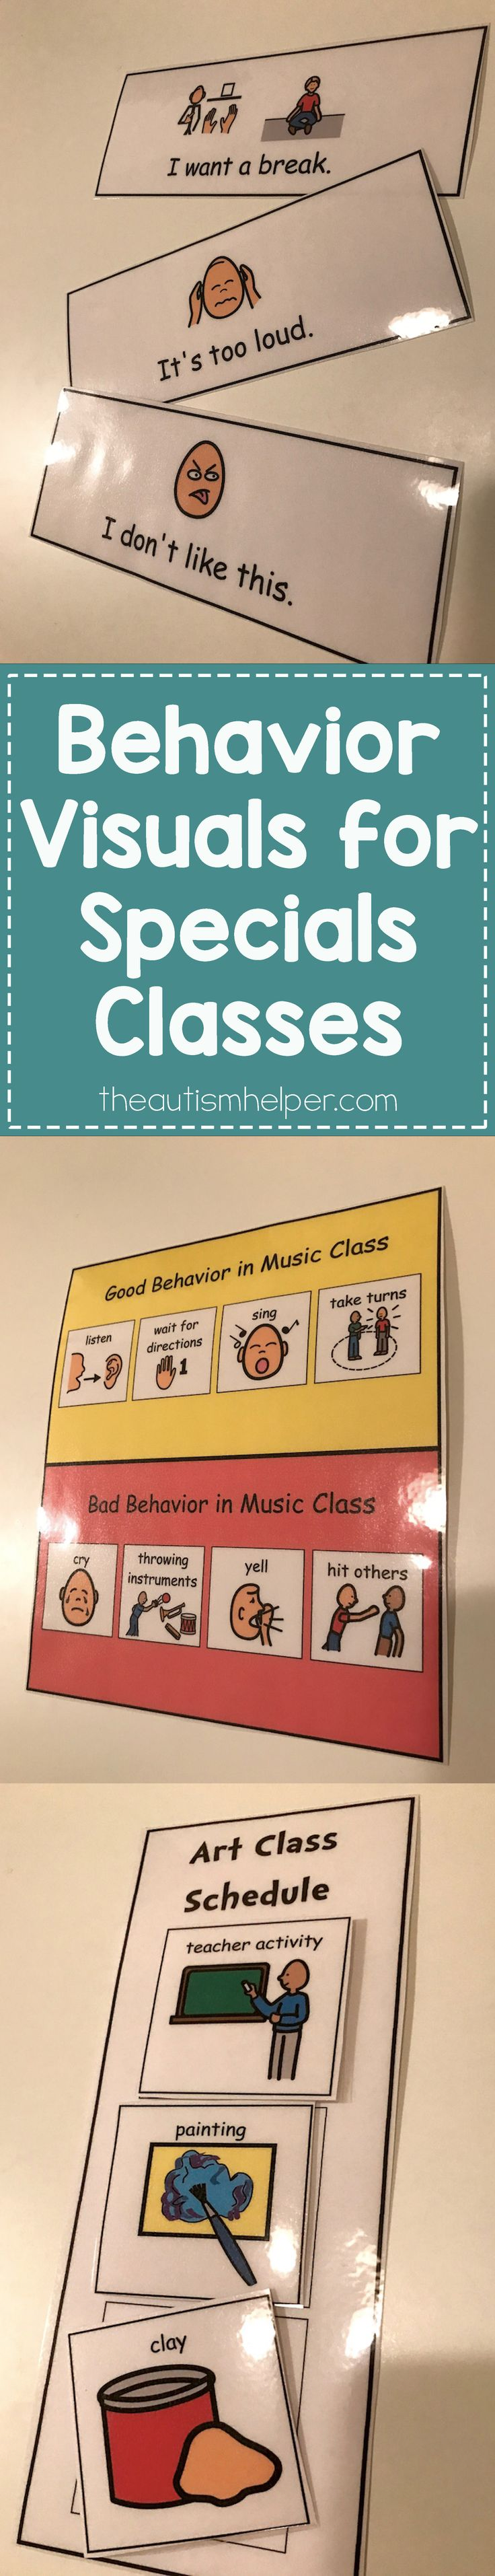 We want to share support for our specials classes - like gym, music & art - with specific behavior visuals! Our students may frequent these classes yet feel unfamiliar with them. Time to pull those same strategies that are successful in your classroom into the specials room!! From theautismhelper.com #theautismhelper